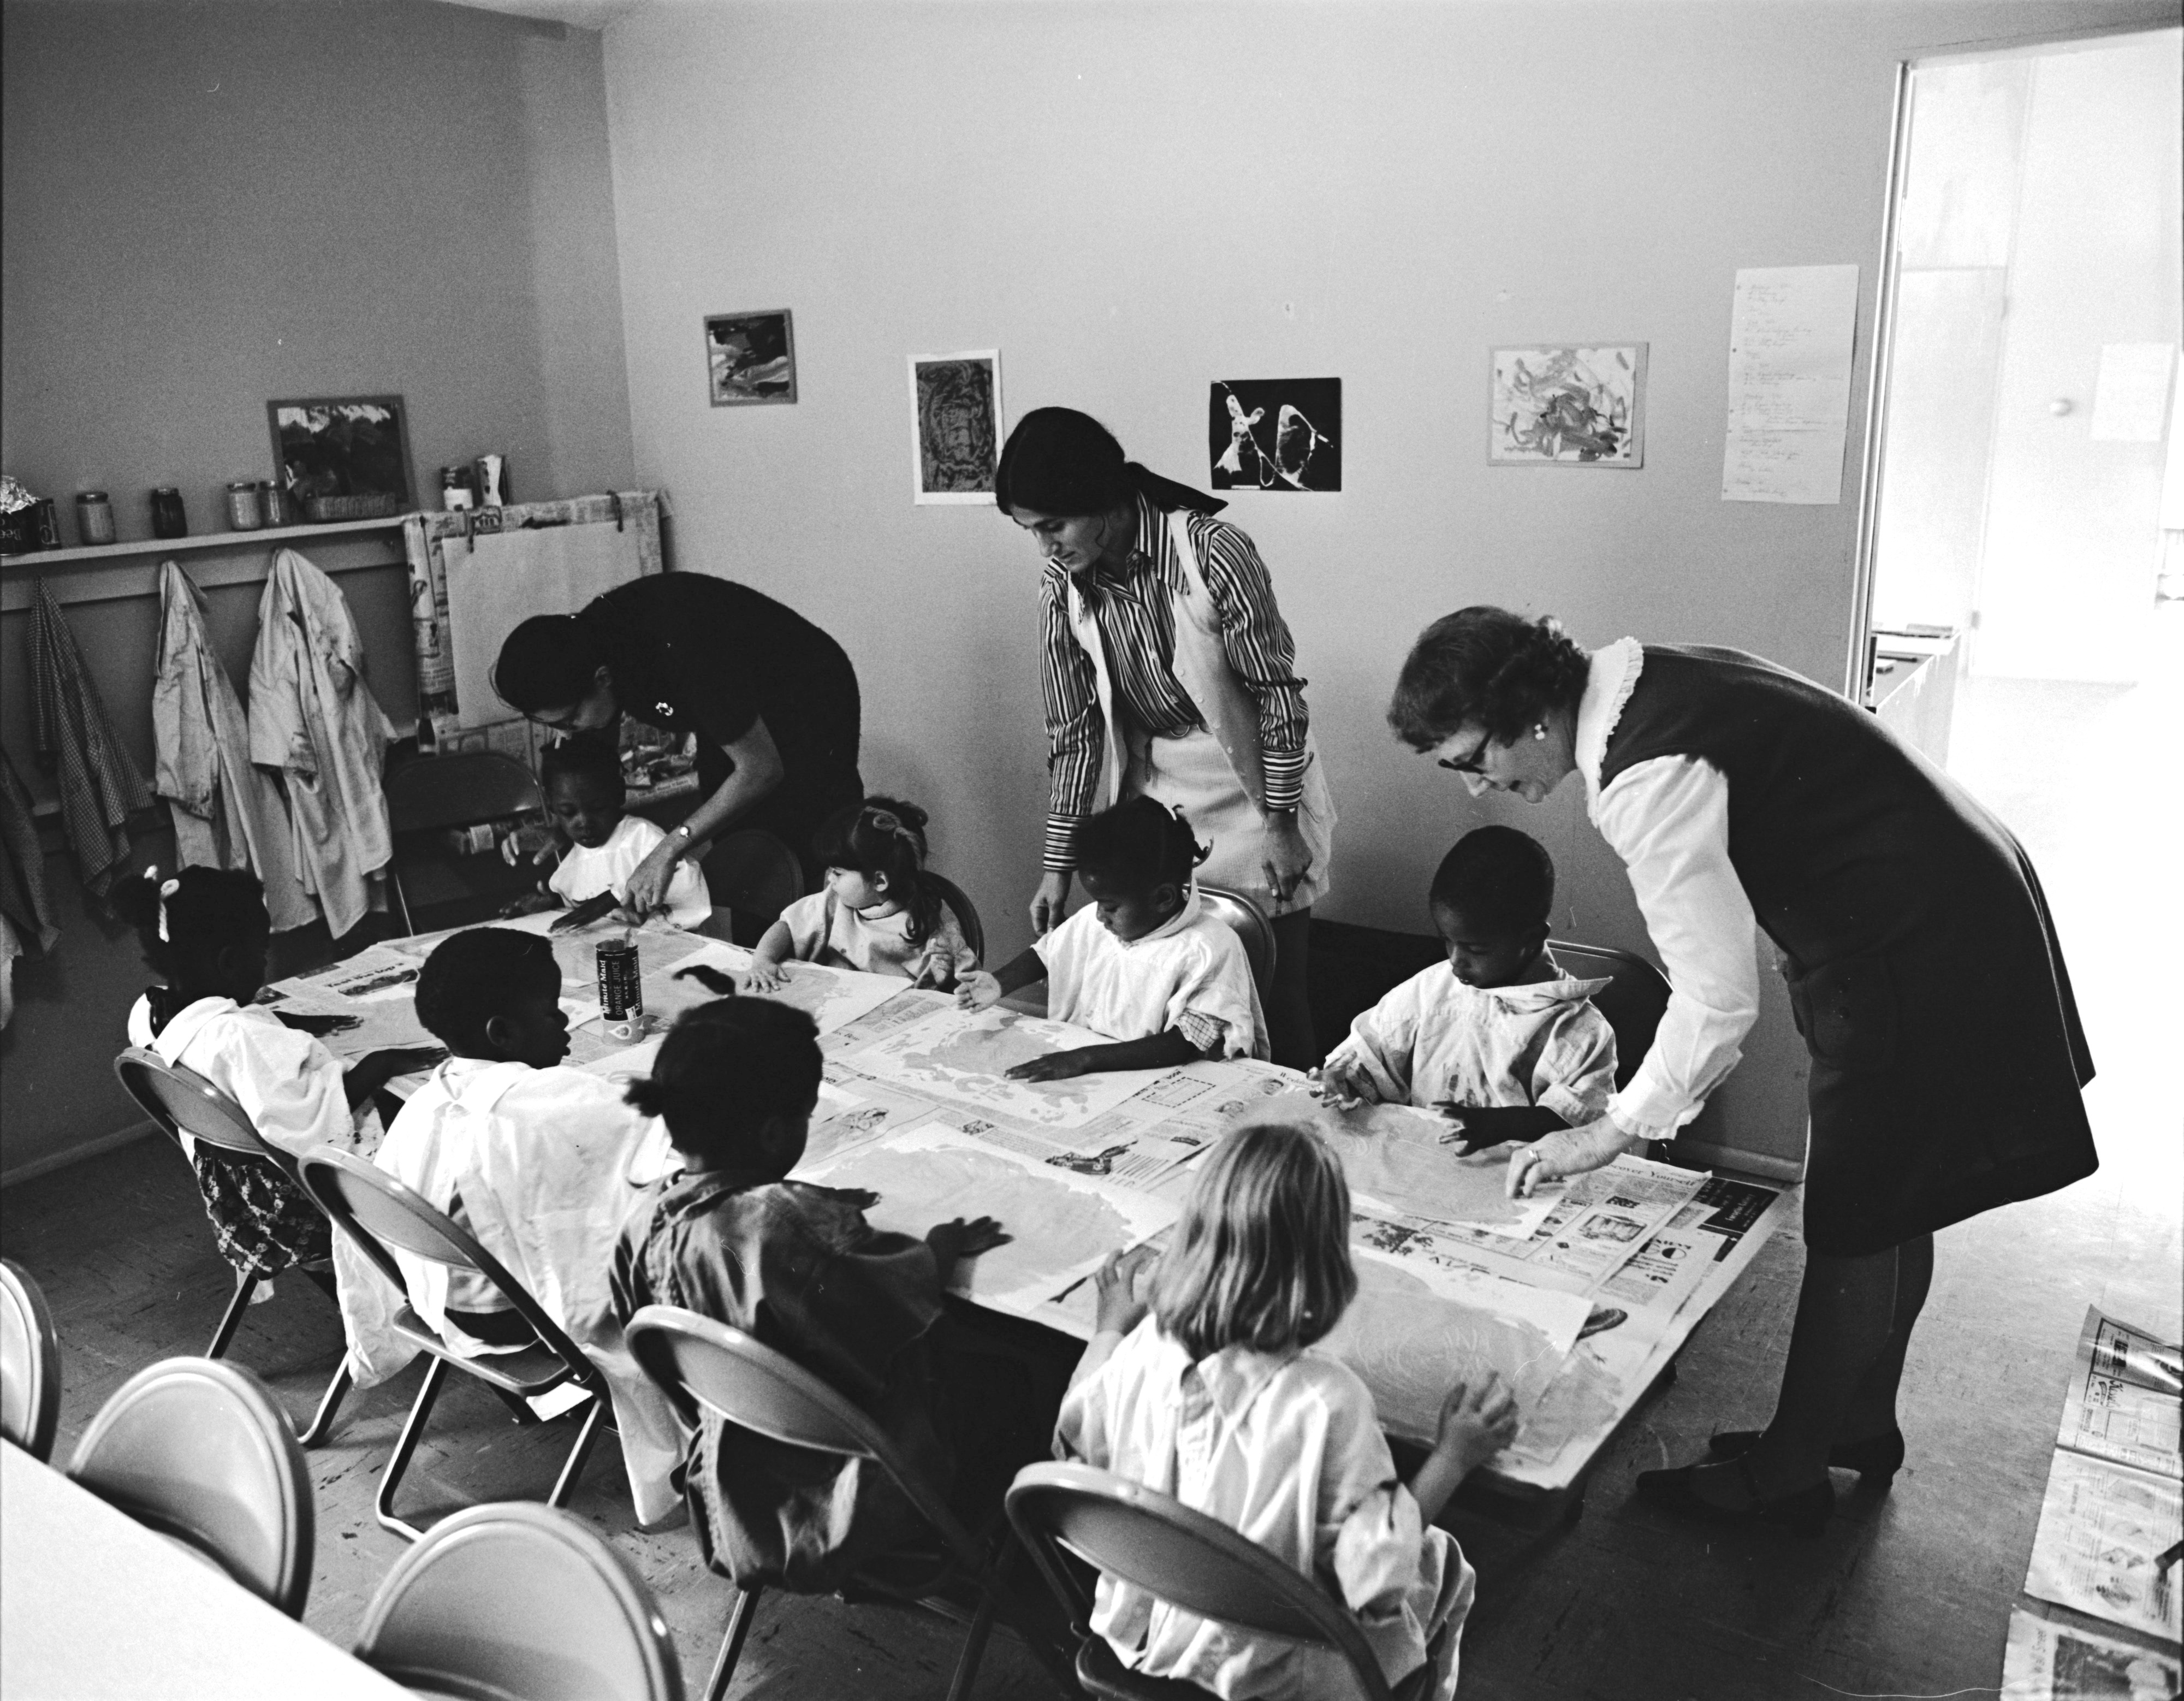 Finger Painting at Peace Neighborhood Center, October 1971 image